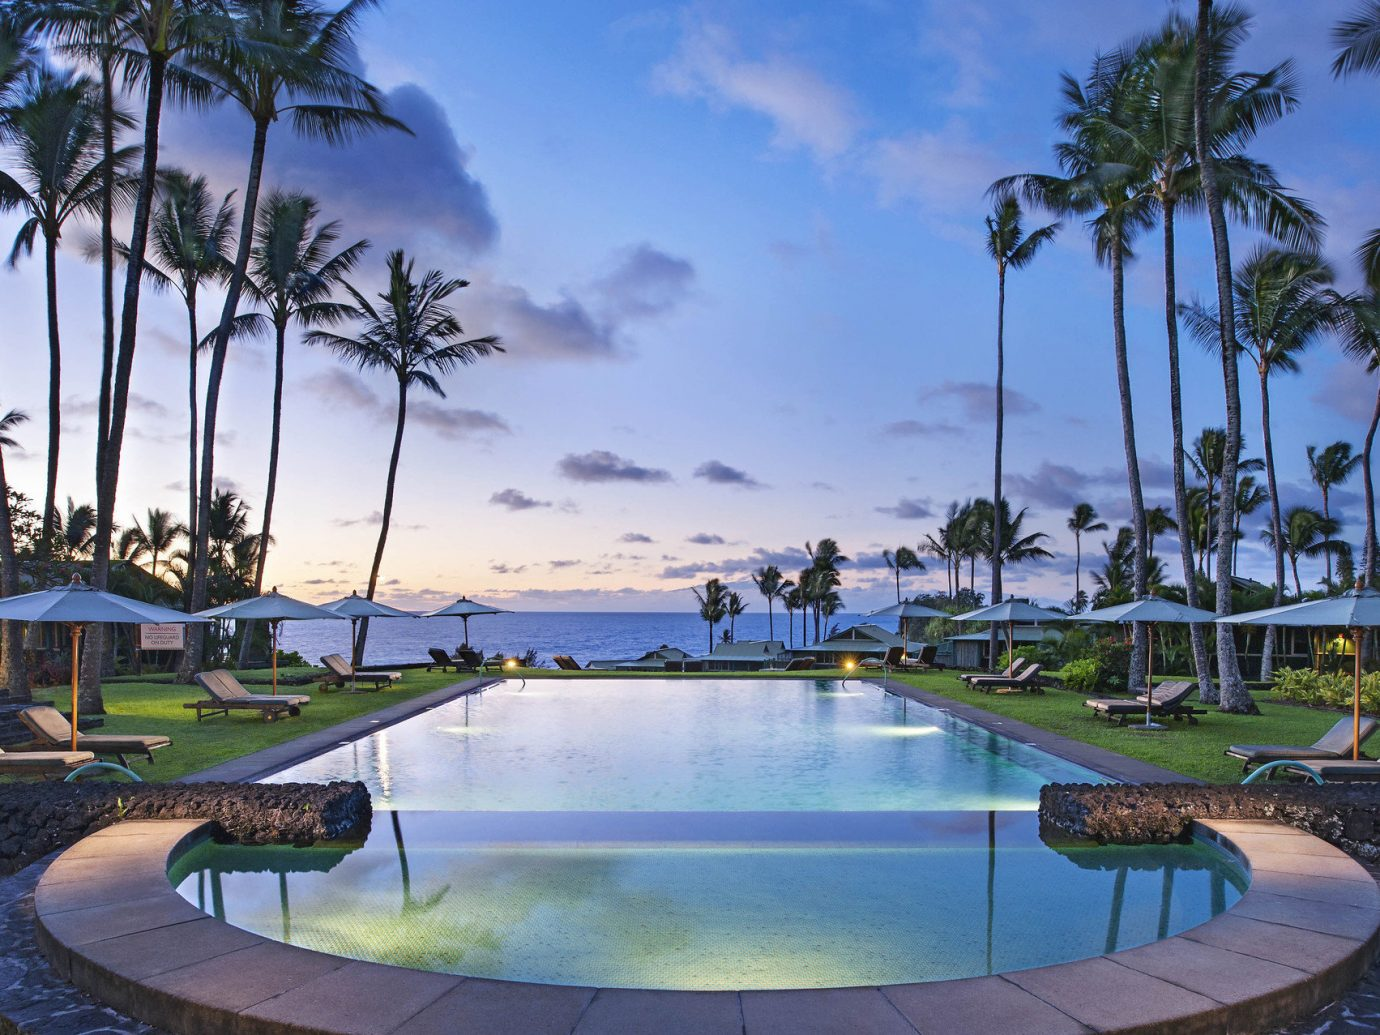 Beach Boutique Hotels dusk Hotels lounge chairs Luxury Luxury Travel Ocean ocean view outdoor pool palm trees Pool remote Sunset Trip Ideas Tropical umbrellas view sky tree outdoor swimming pool leisure property Resort estate vacation Villa palm condominium real estate backyard mansion shore furniture